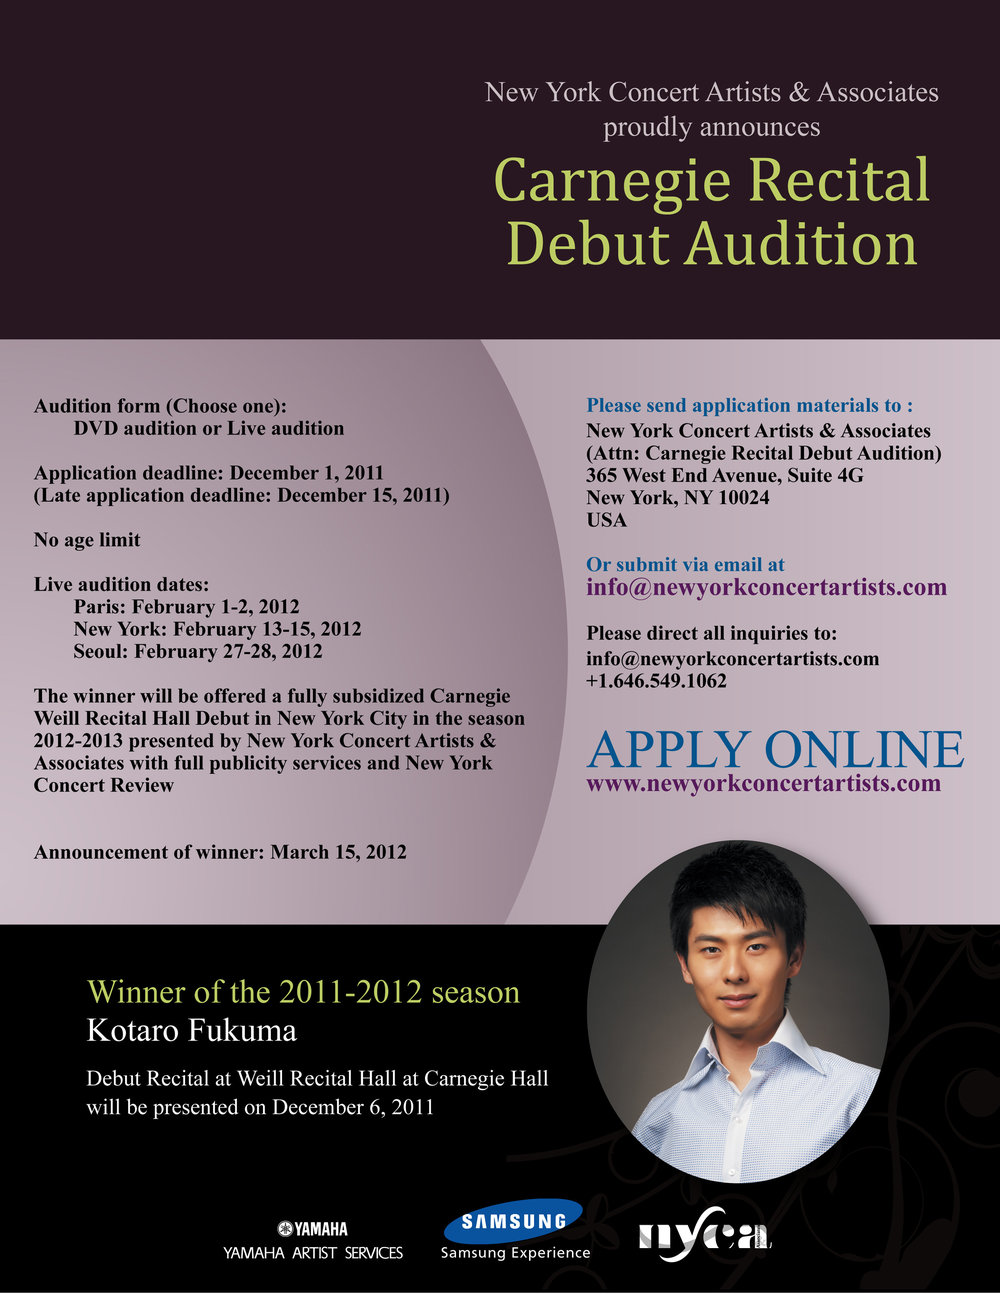 NYCA_CARNEGIE_RECITAL_AUDITION_8.5x11_v_EN_final.jpg